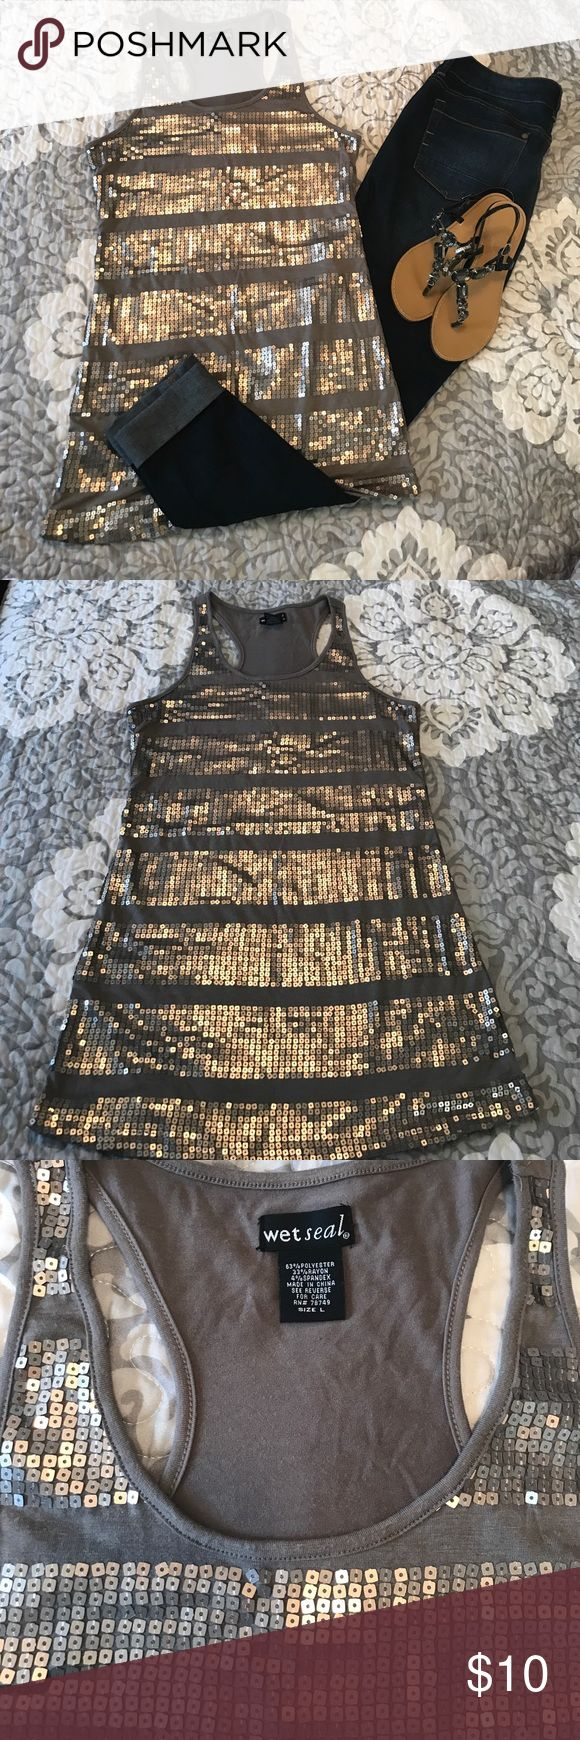 Grey sequined tank top Silver sequin grey tank top. 63%polyester 33%rayon 4%spandex Wet Seal Tops Tank Tops